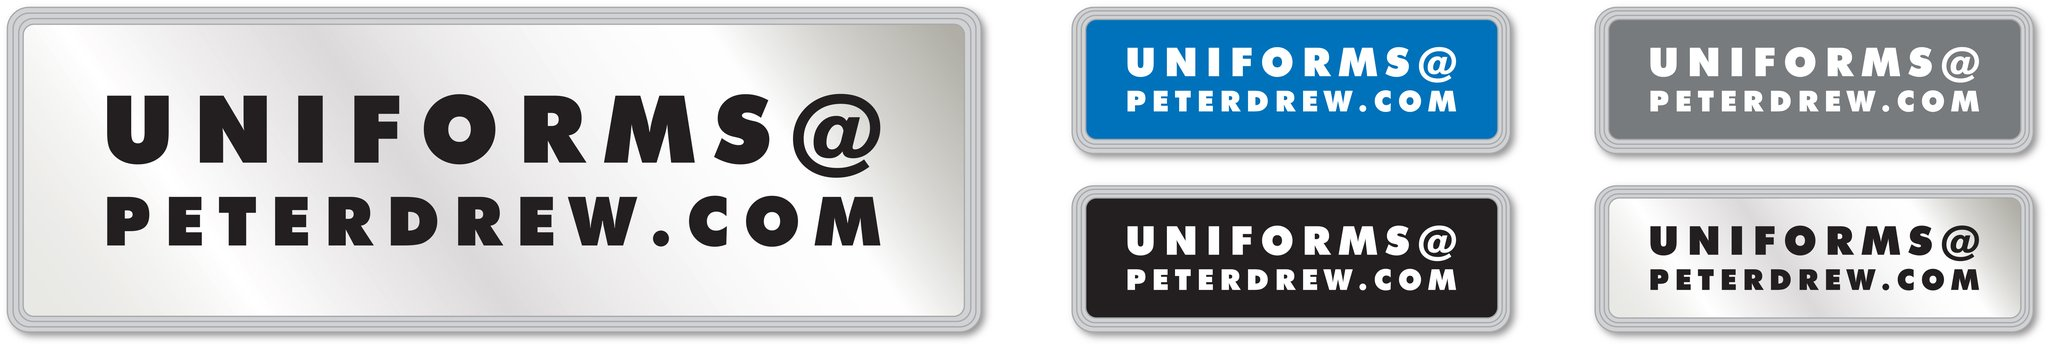 Encapsulated Reflective Badges Peter Drew Security uniforms